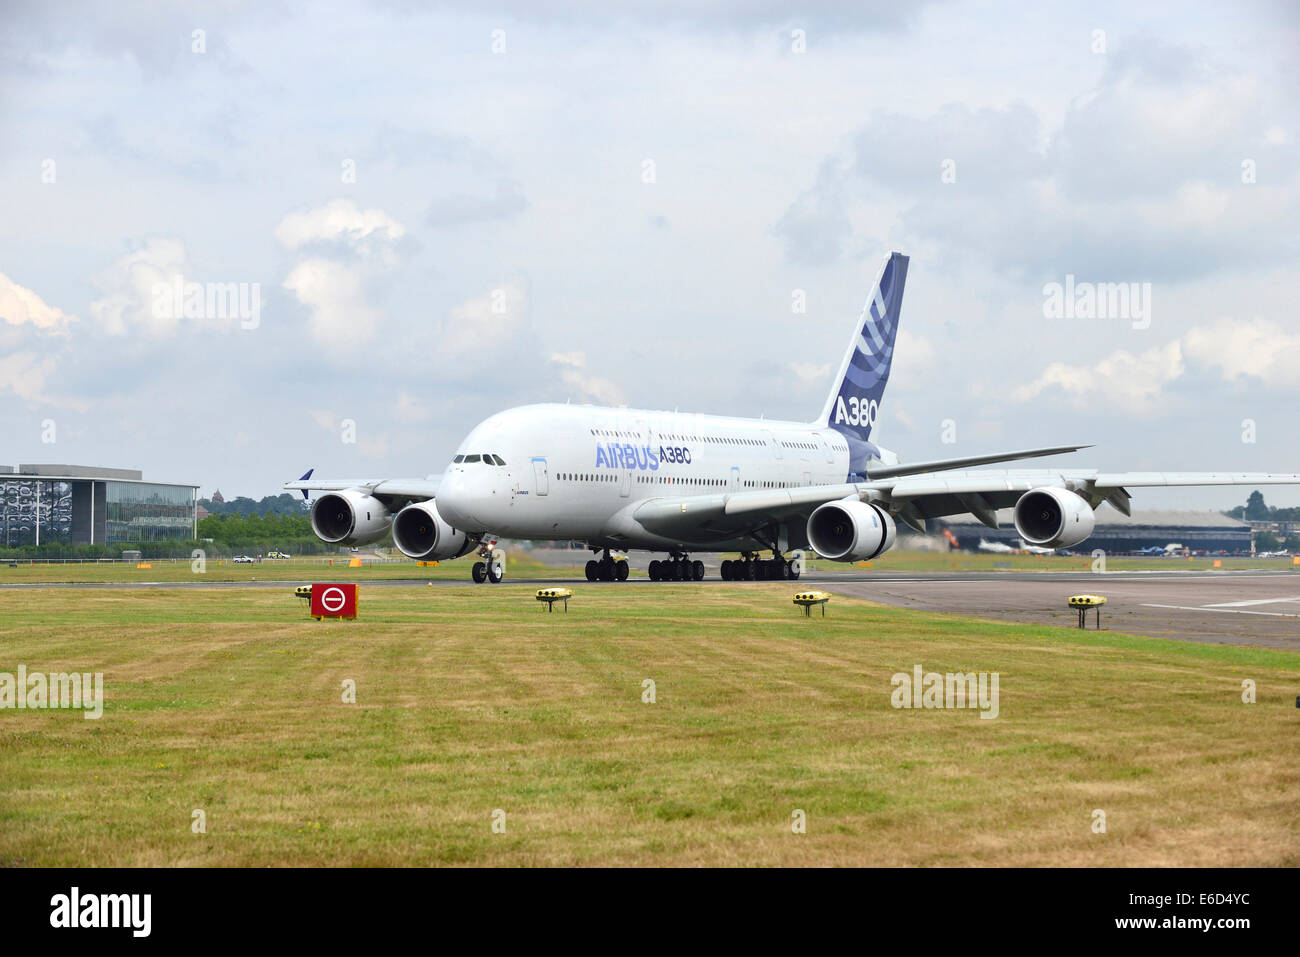 Airbus 380 takes off or a flighing demonstration  at Farnborough International Airshow. 2014 - Stock Image